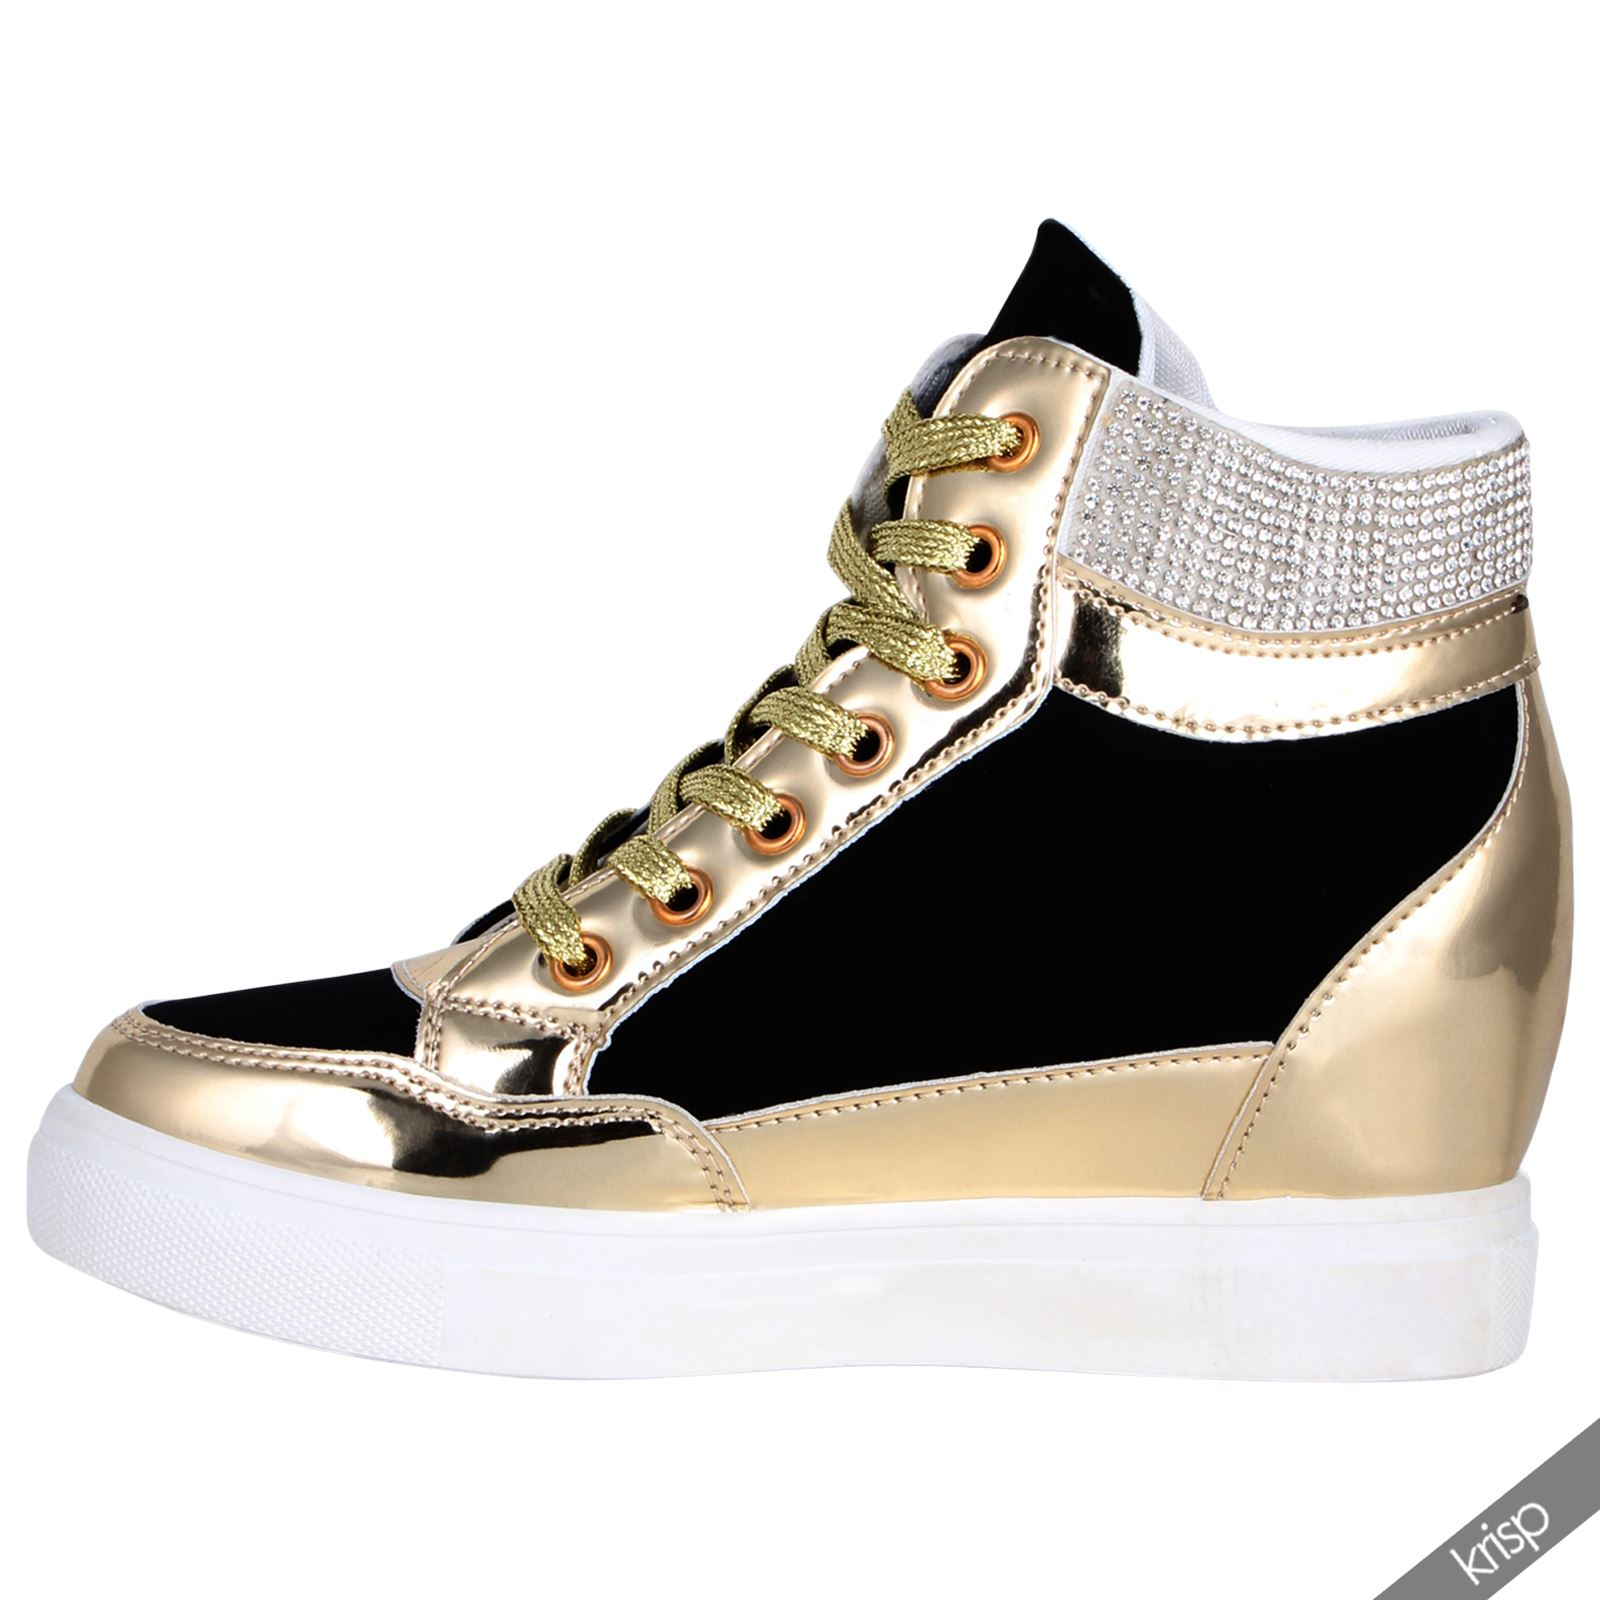 Sneaker Black Jacobs Daisy Studded Women's Marc Tell it to the judge — Marc Studded Jacobs Women's Black Sneaker Daisy rSrwUTq7 Publisher insists randomized card packs are .